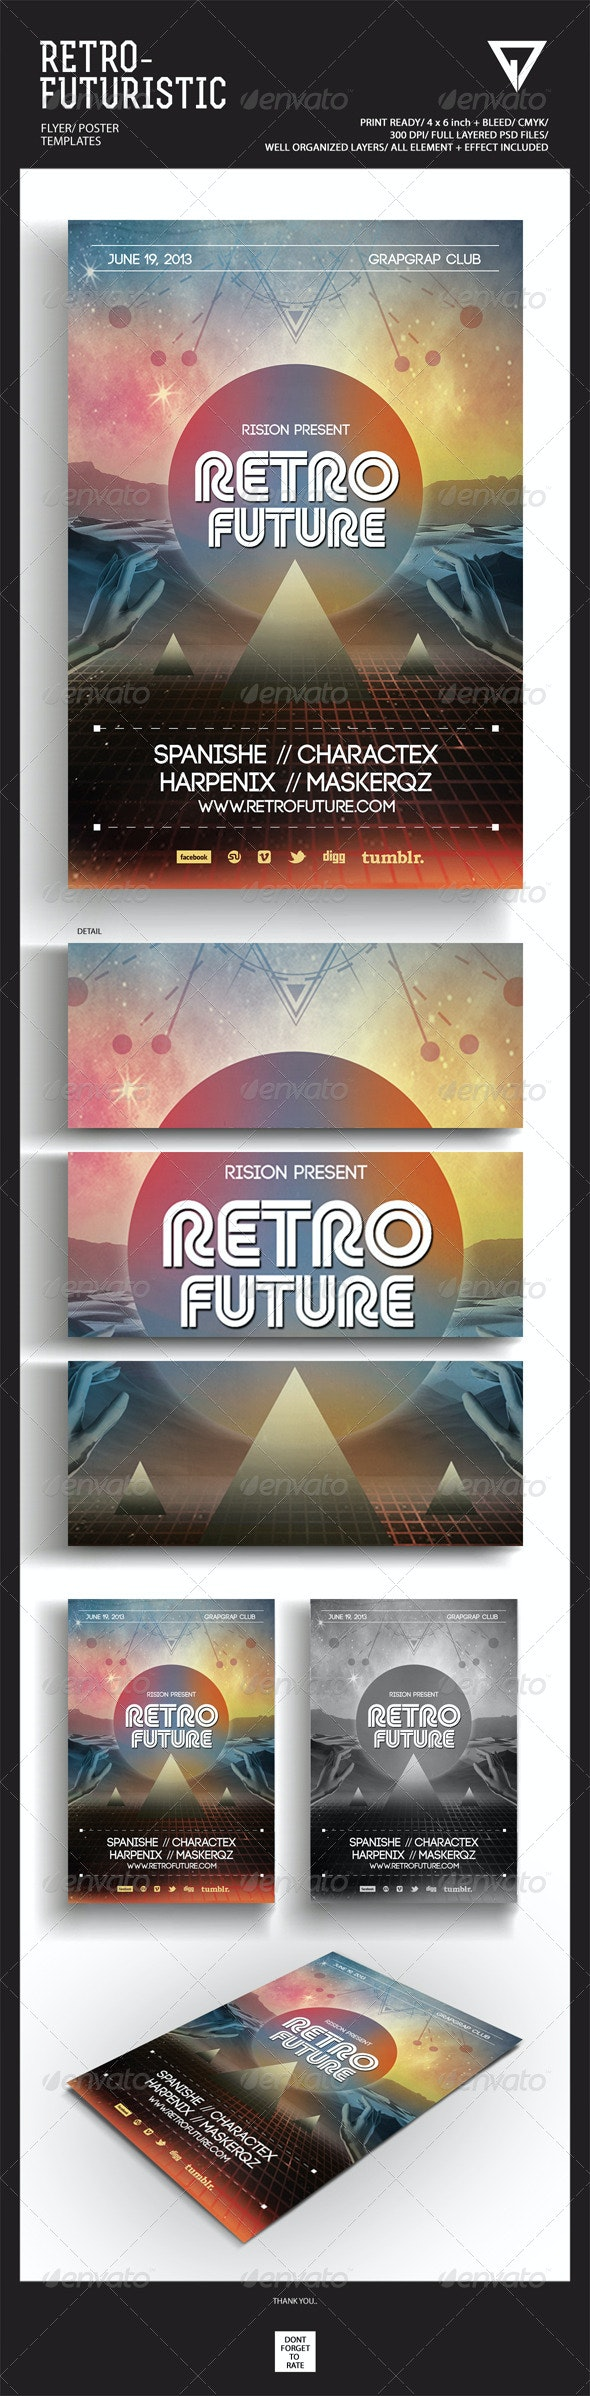 Retro Futuristic Flyer/Poster - Events Flyers